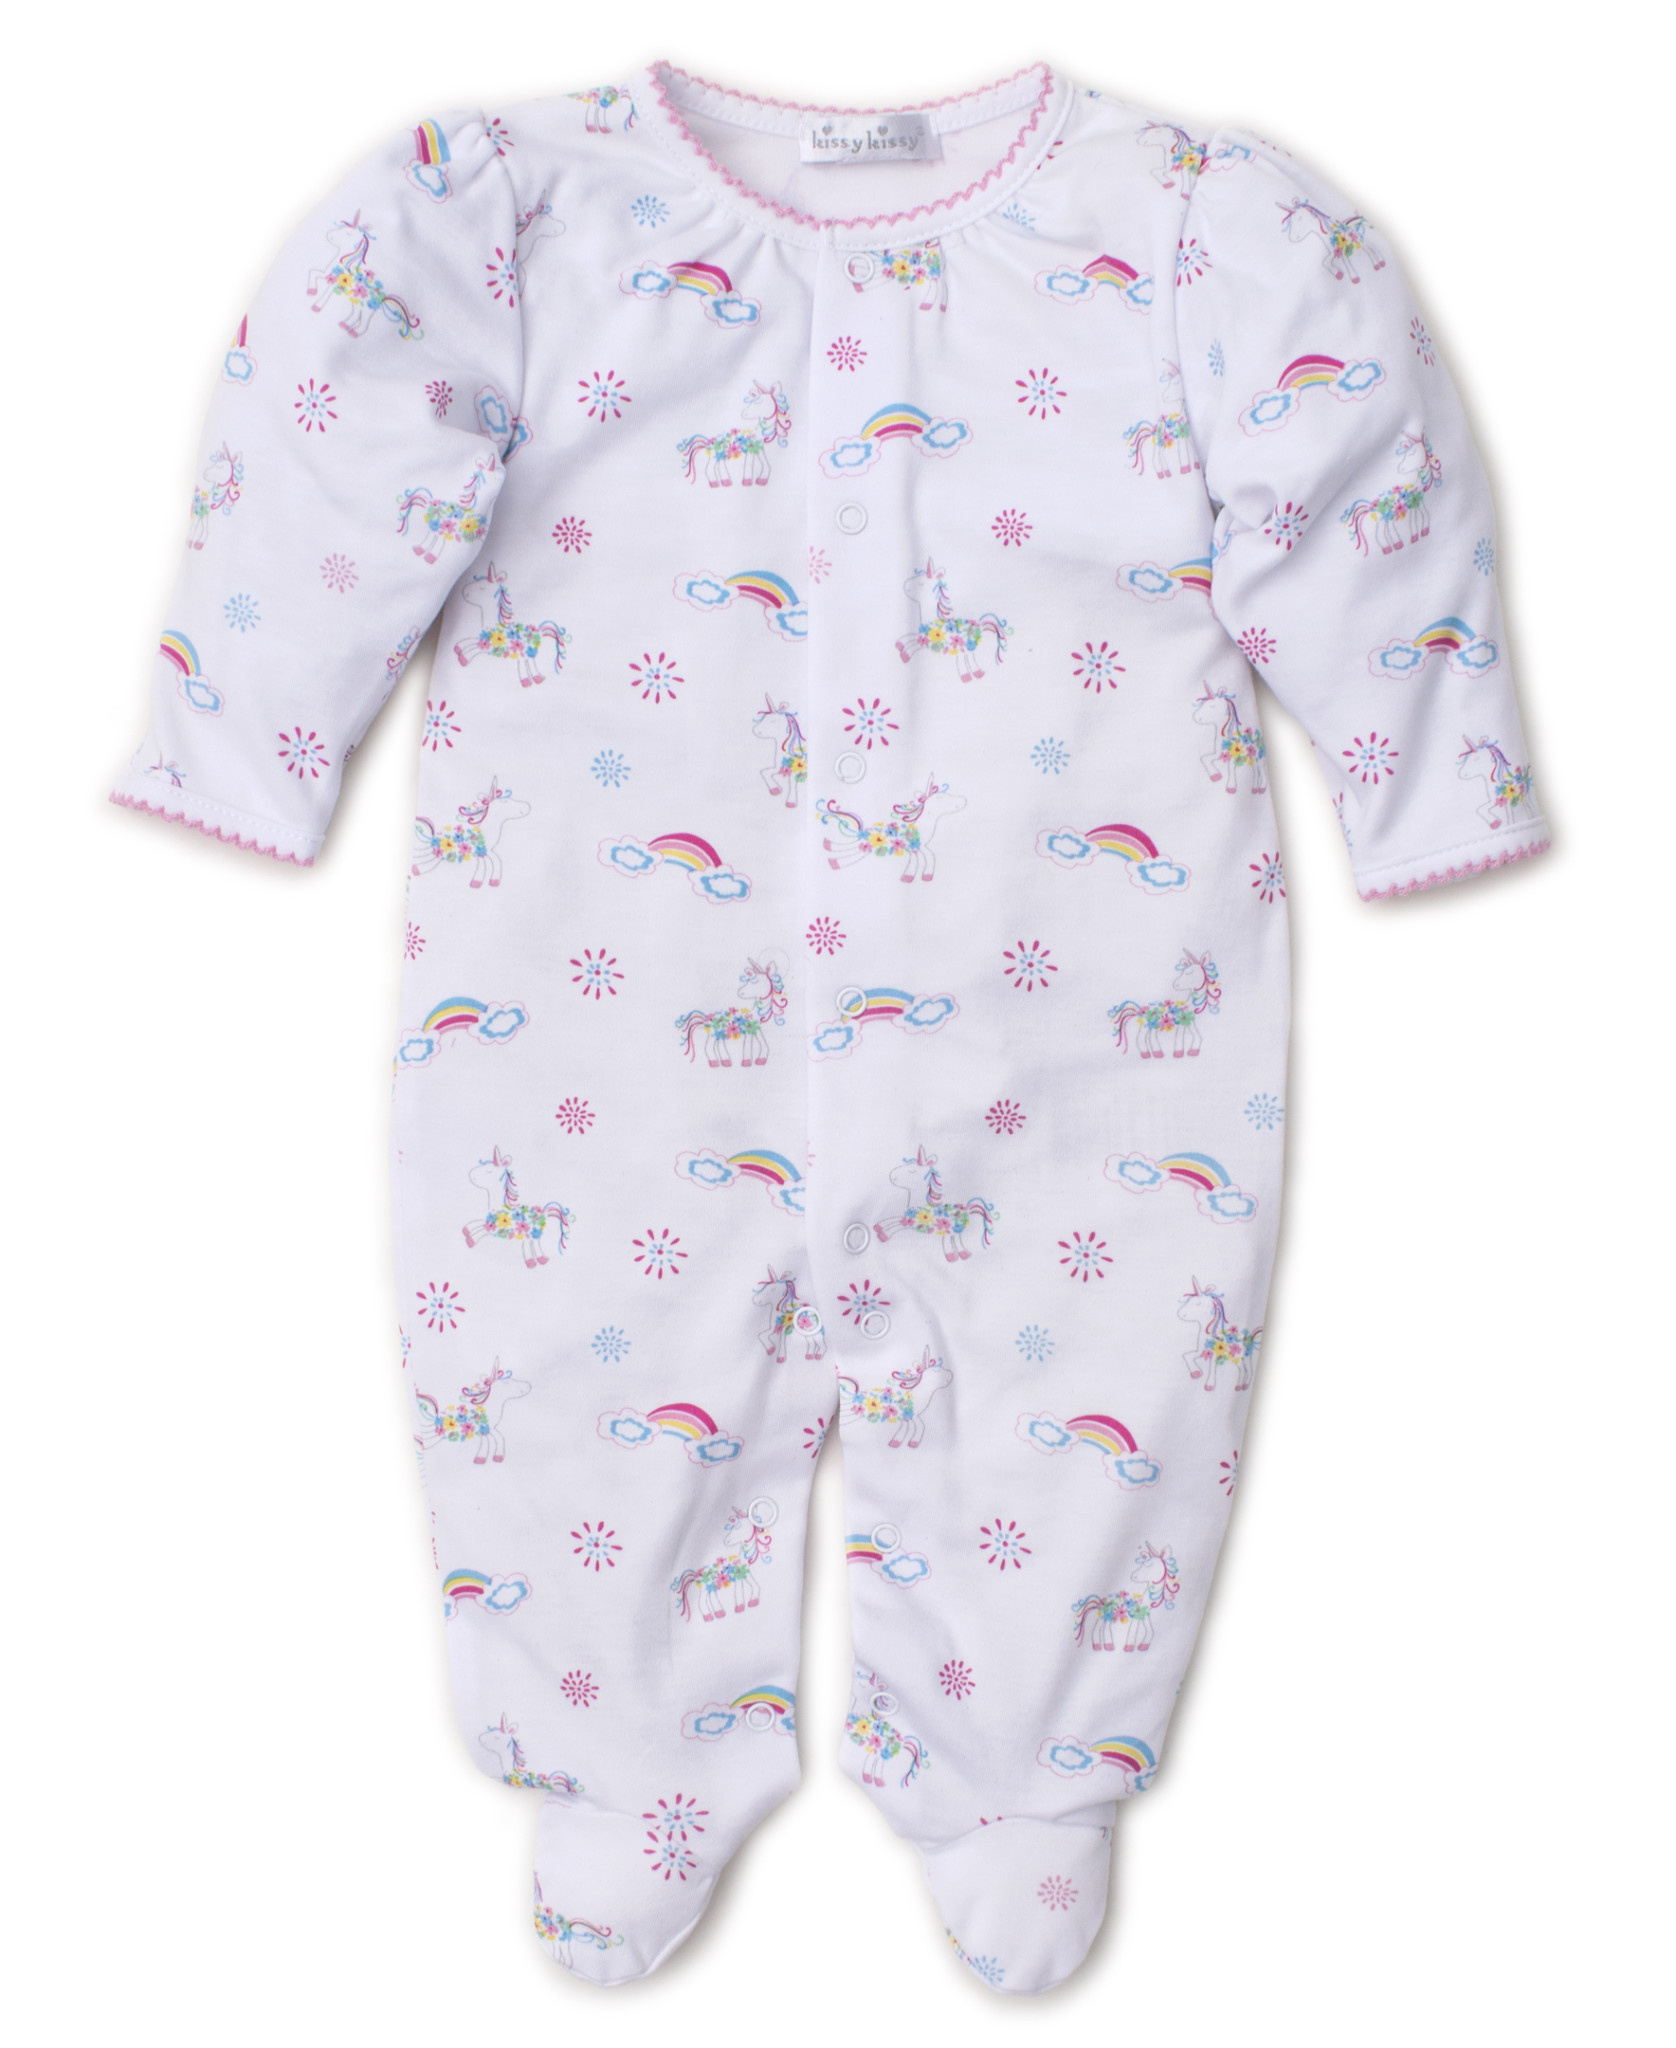 Kissy Kissy Rainbow unicorns footie